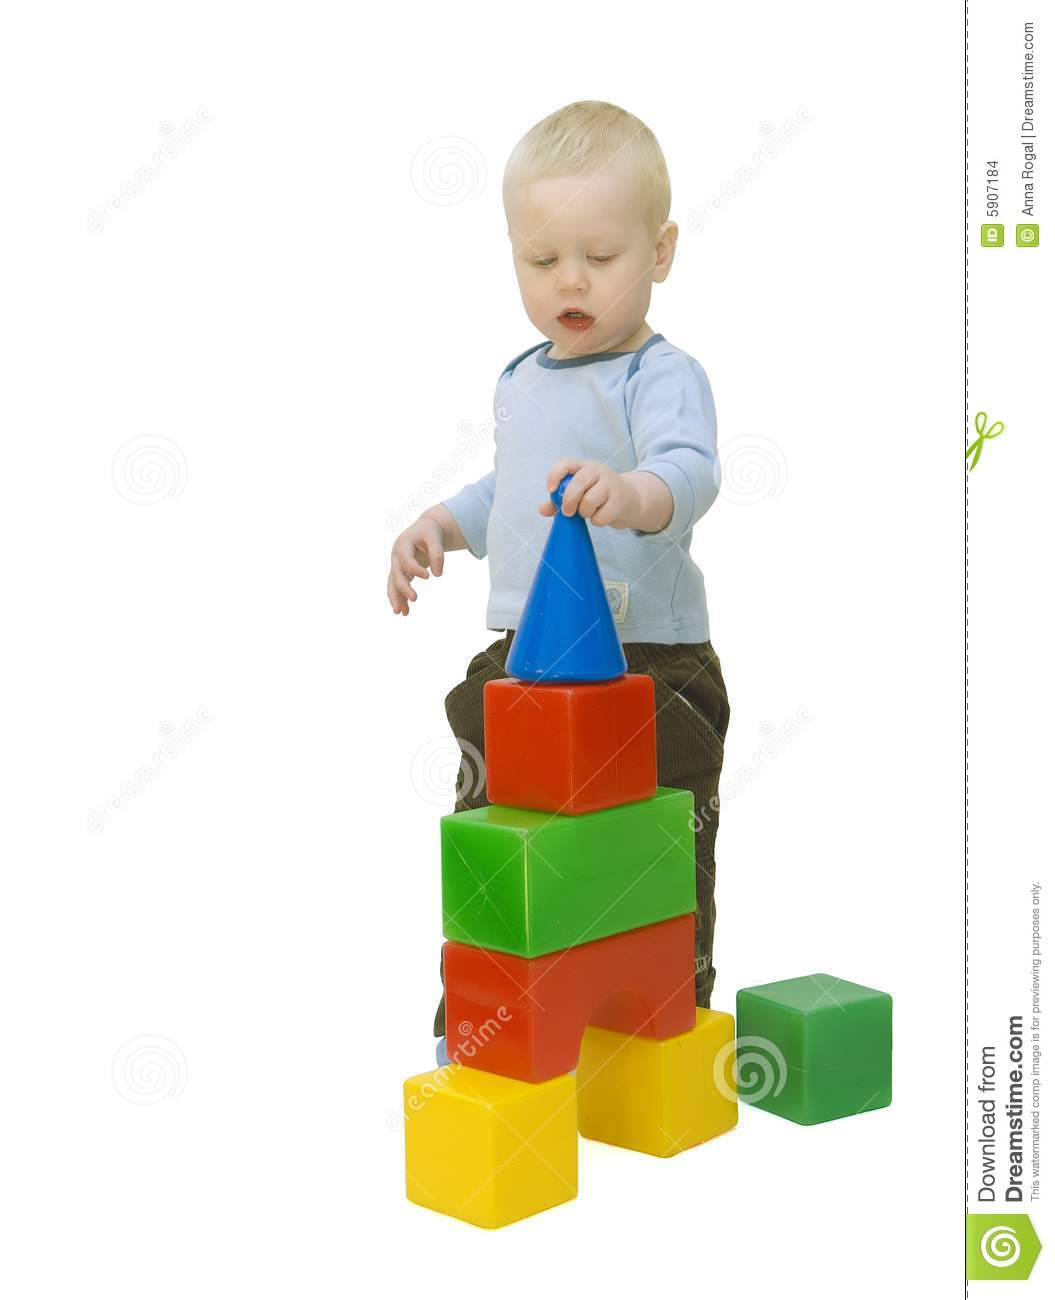 The Small Child Building A Tower From Cubes Stock Images